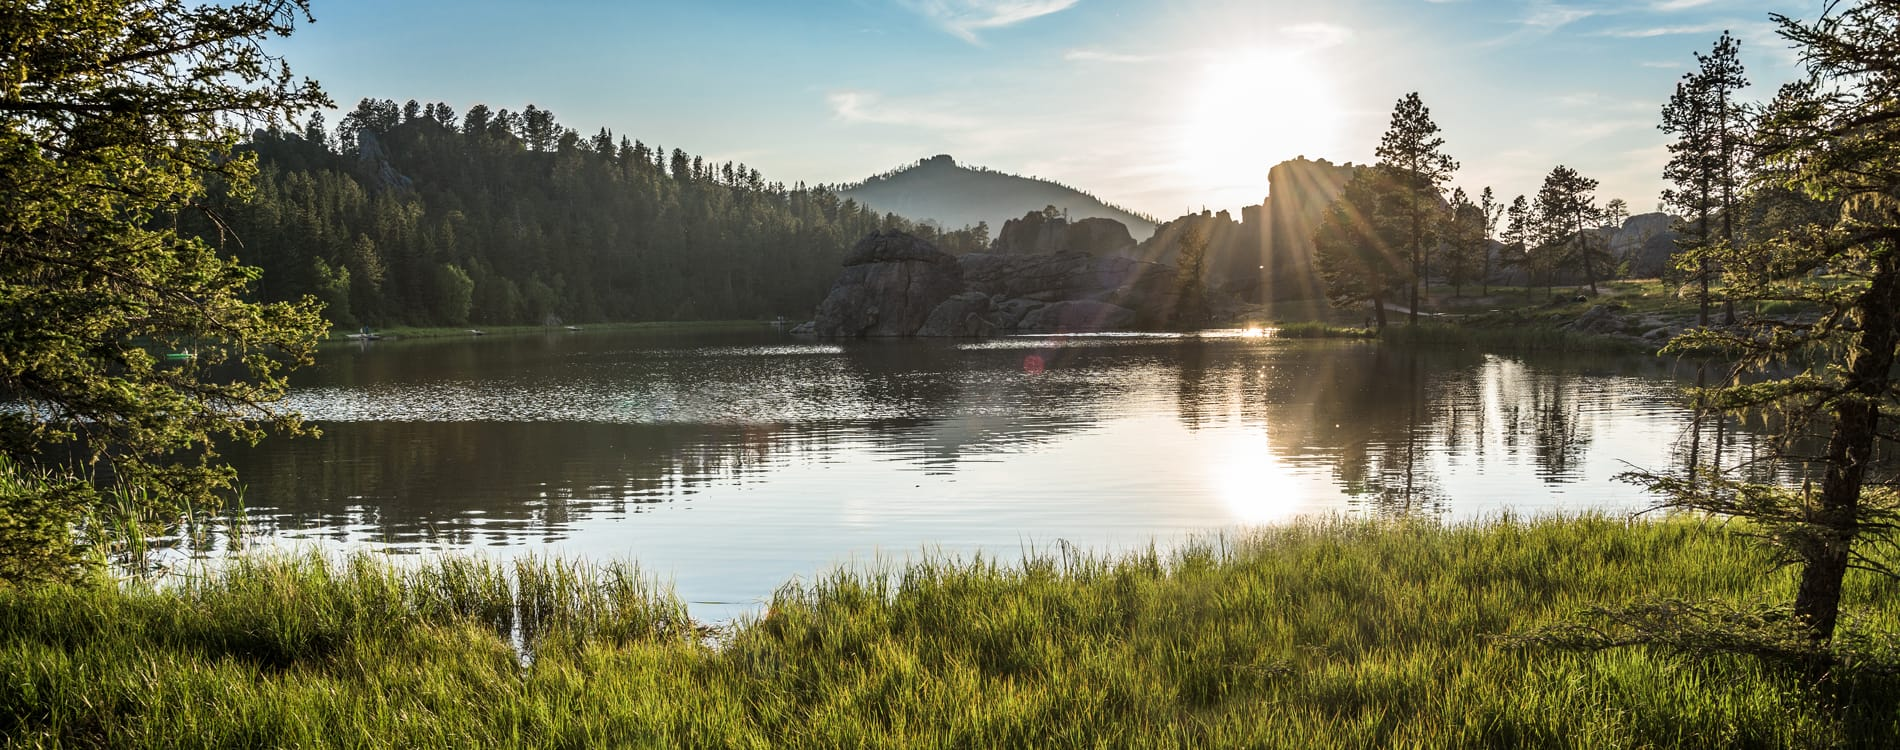 Black Hills - Sylvan Lake at Sunset